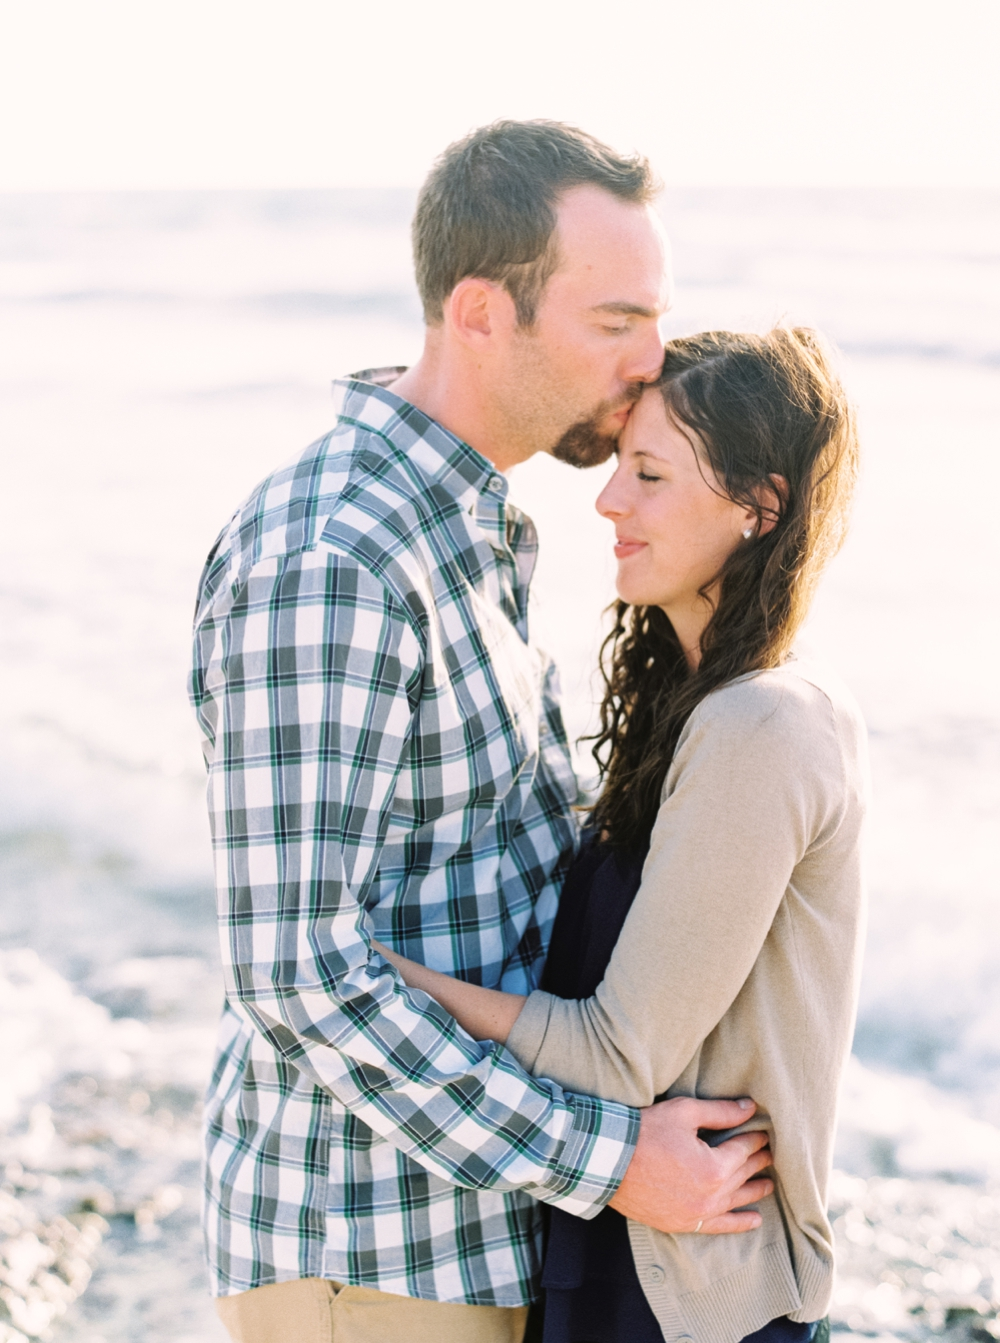 Destination wedding photographer | beach engagement session | Calgary wedding photographers | Mexico wedding photography